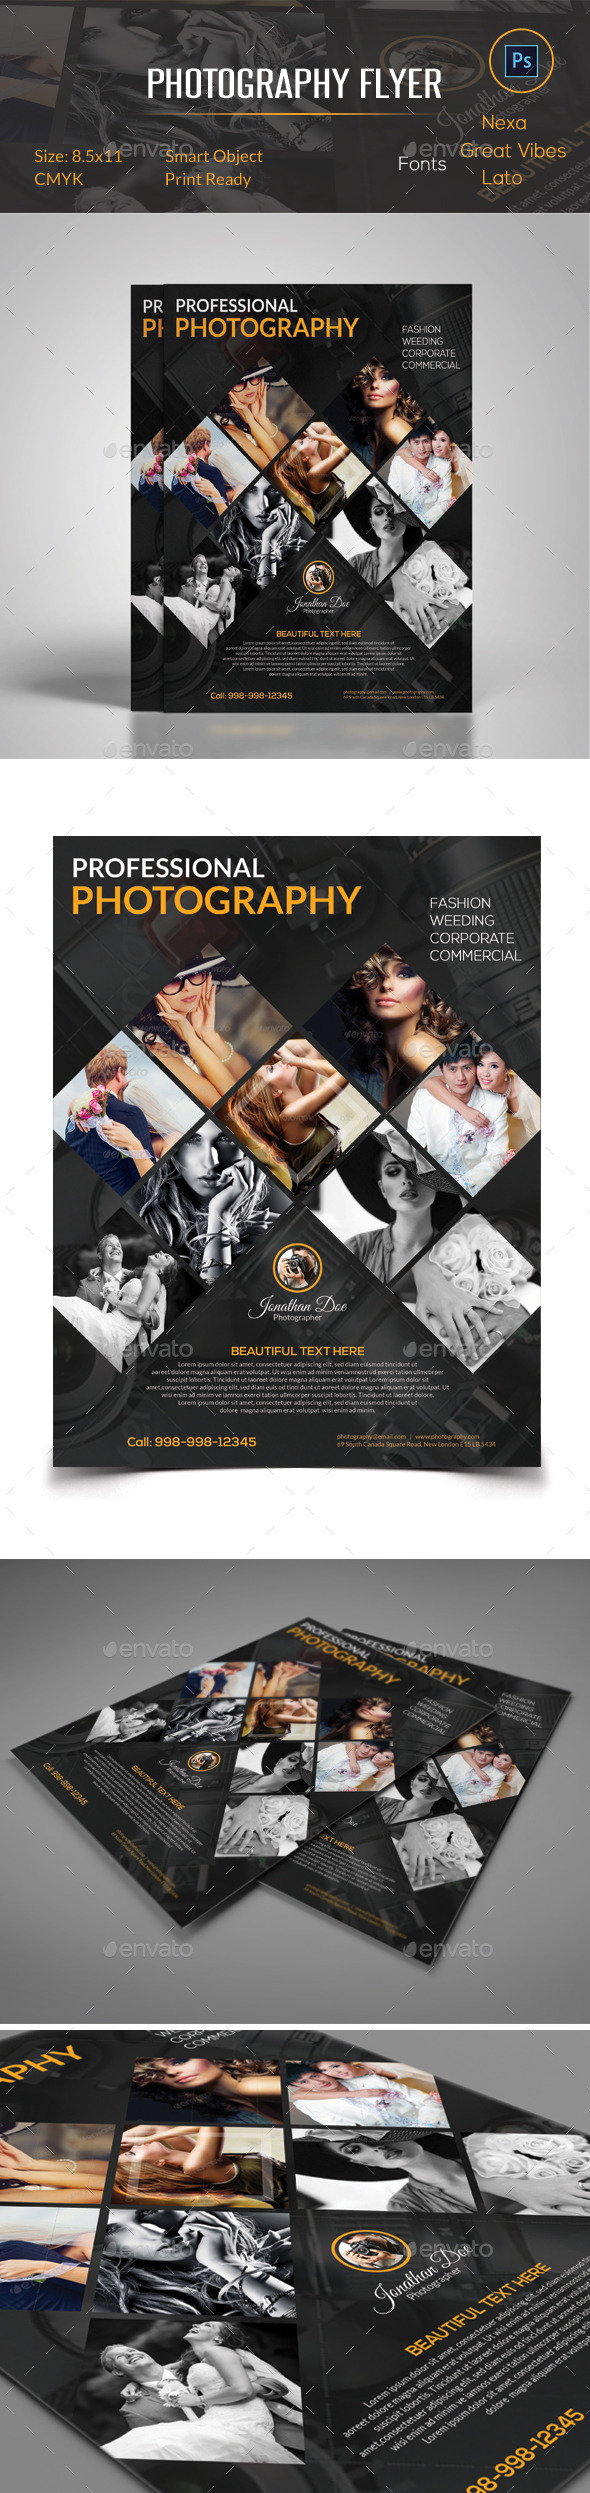 GraphicRiver Photography Flyer 10855098